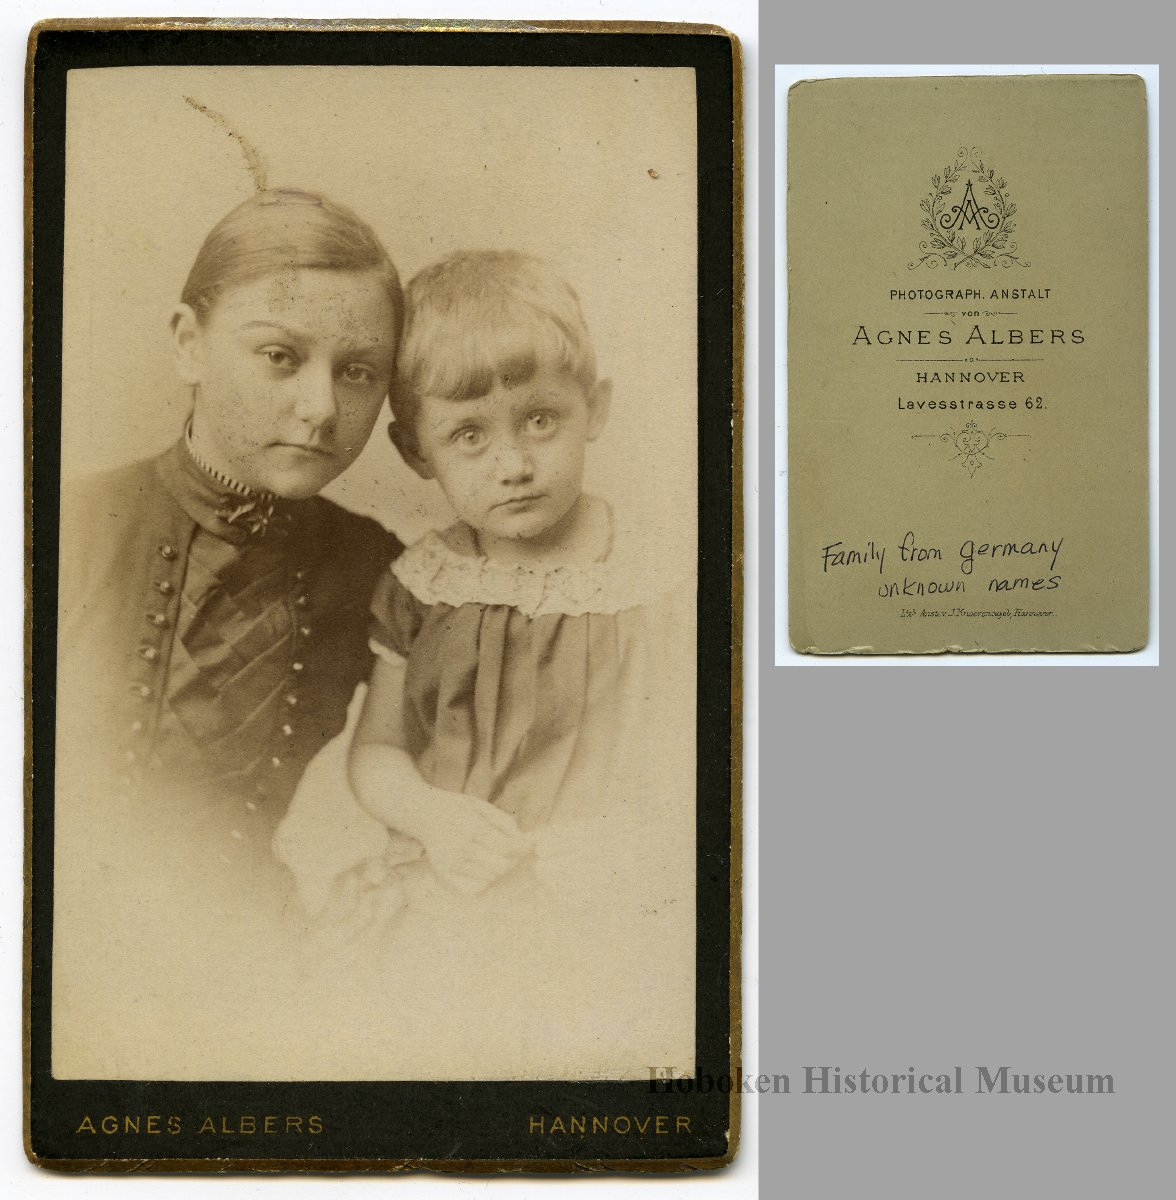 Carte De Visite 3 Of Germans Probably Related To Sanntrock Family Hoboken From Studios In Hannover Germany Nd Ca 1885 1900